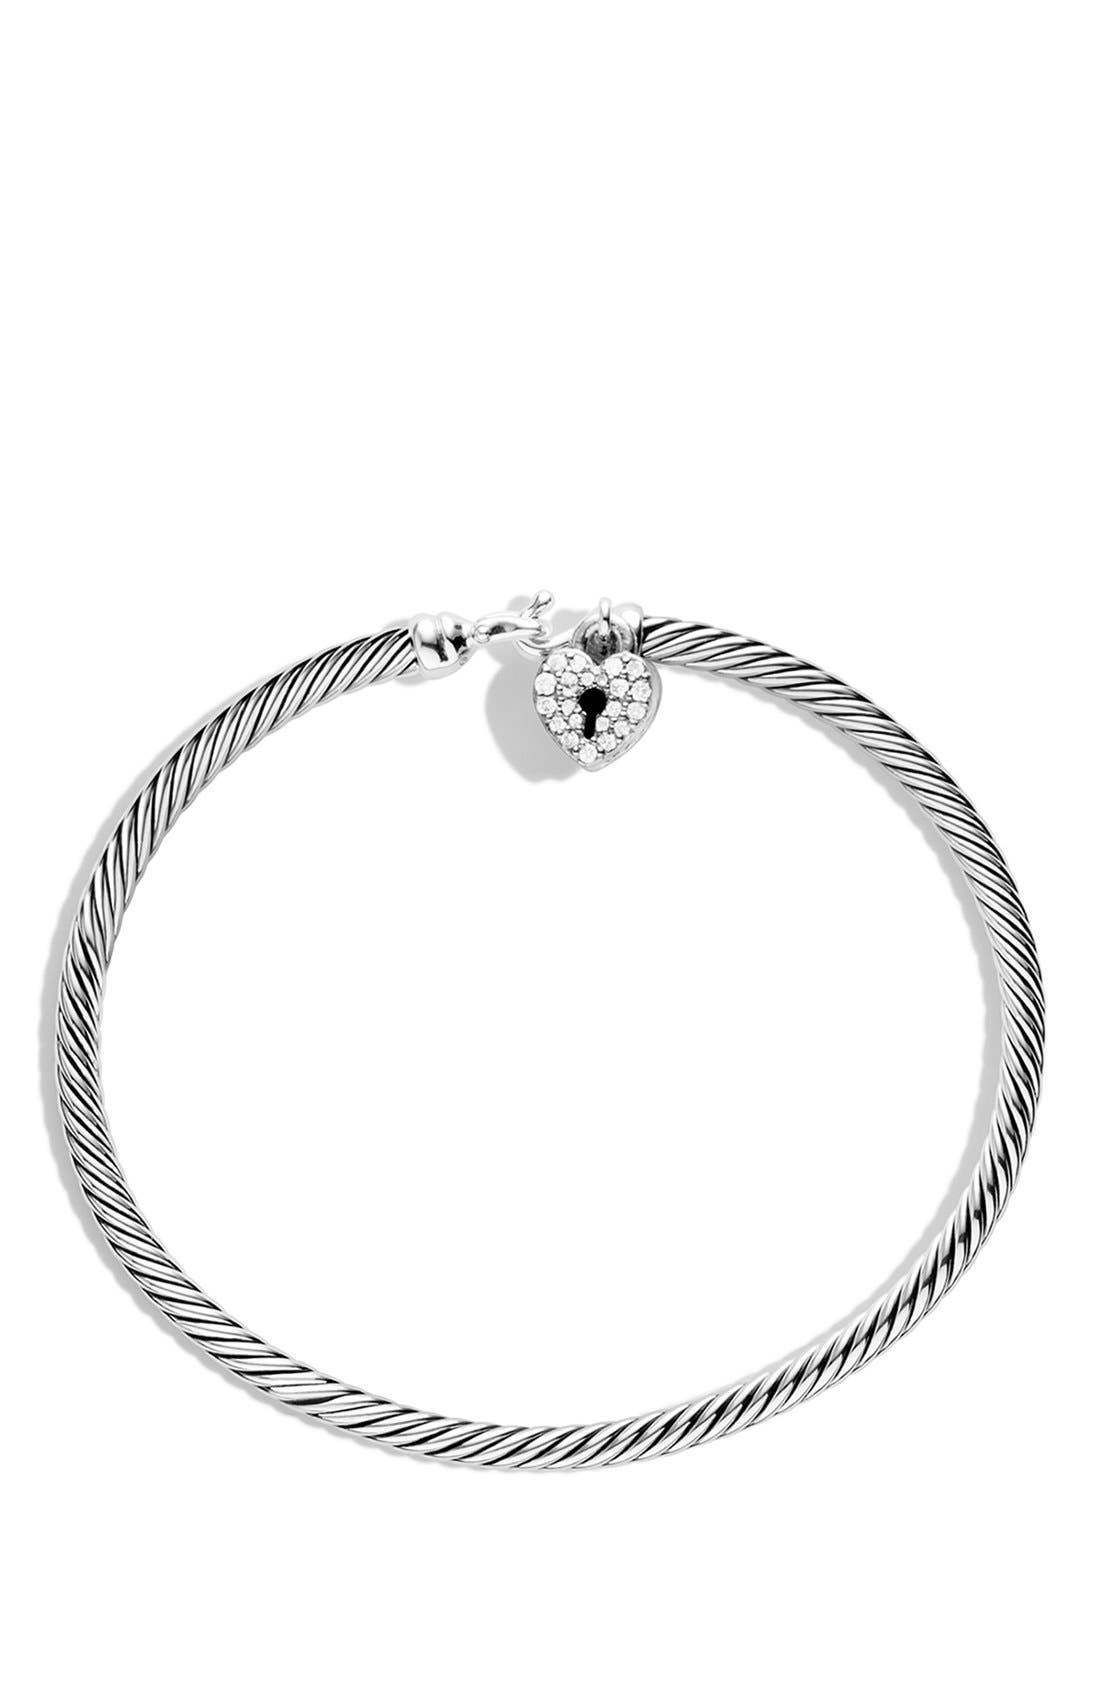 'Cable Collectibles' Heart Lock Bracelet with Diamonds,                             Alternate thumbnail 2, color,                             040